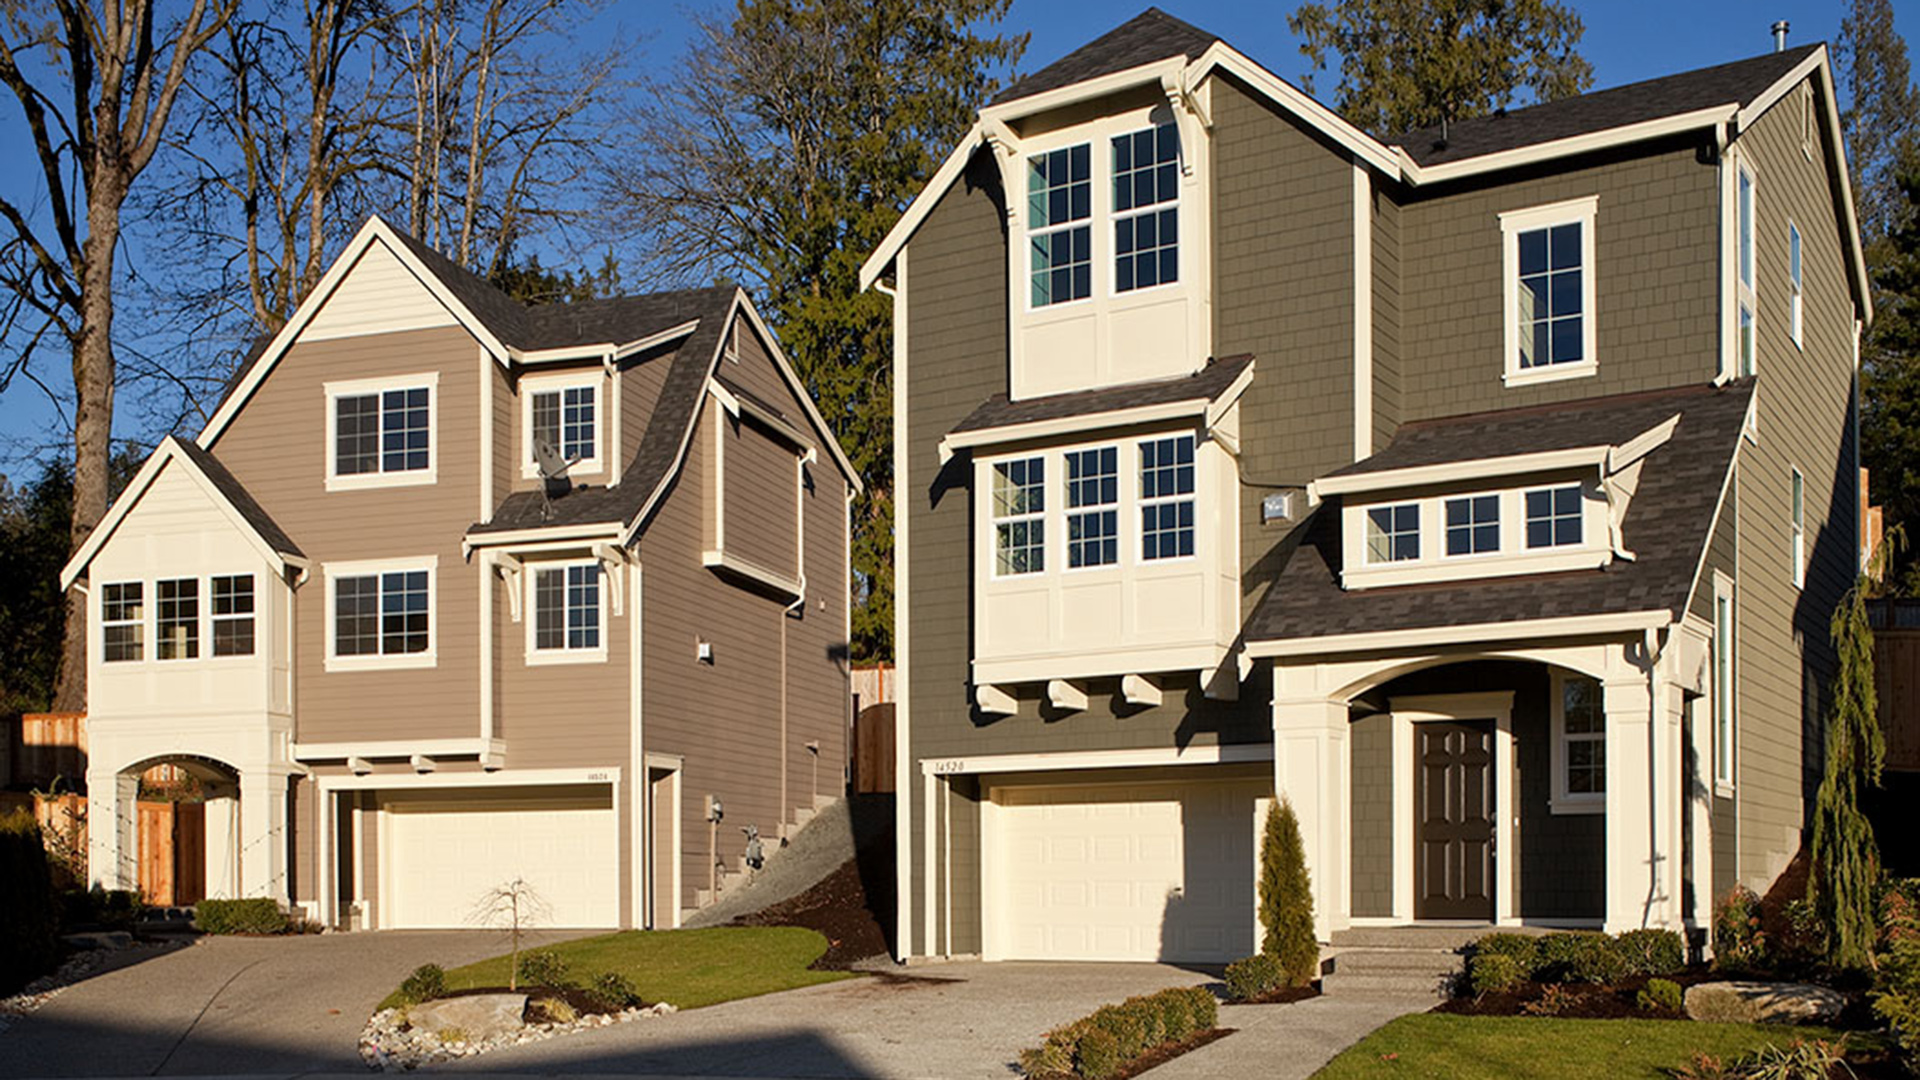 Bothell wa new homes for sale timber creek the bungalows for Pictures of three story houses